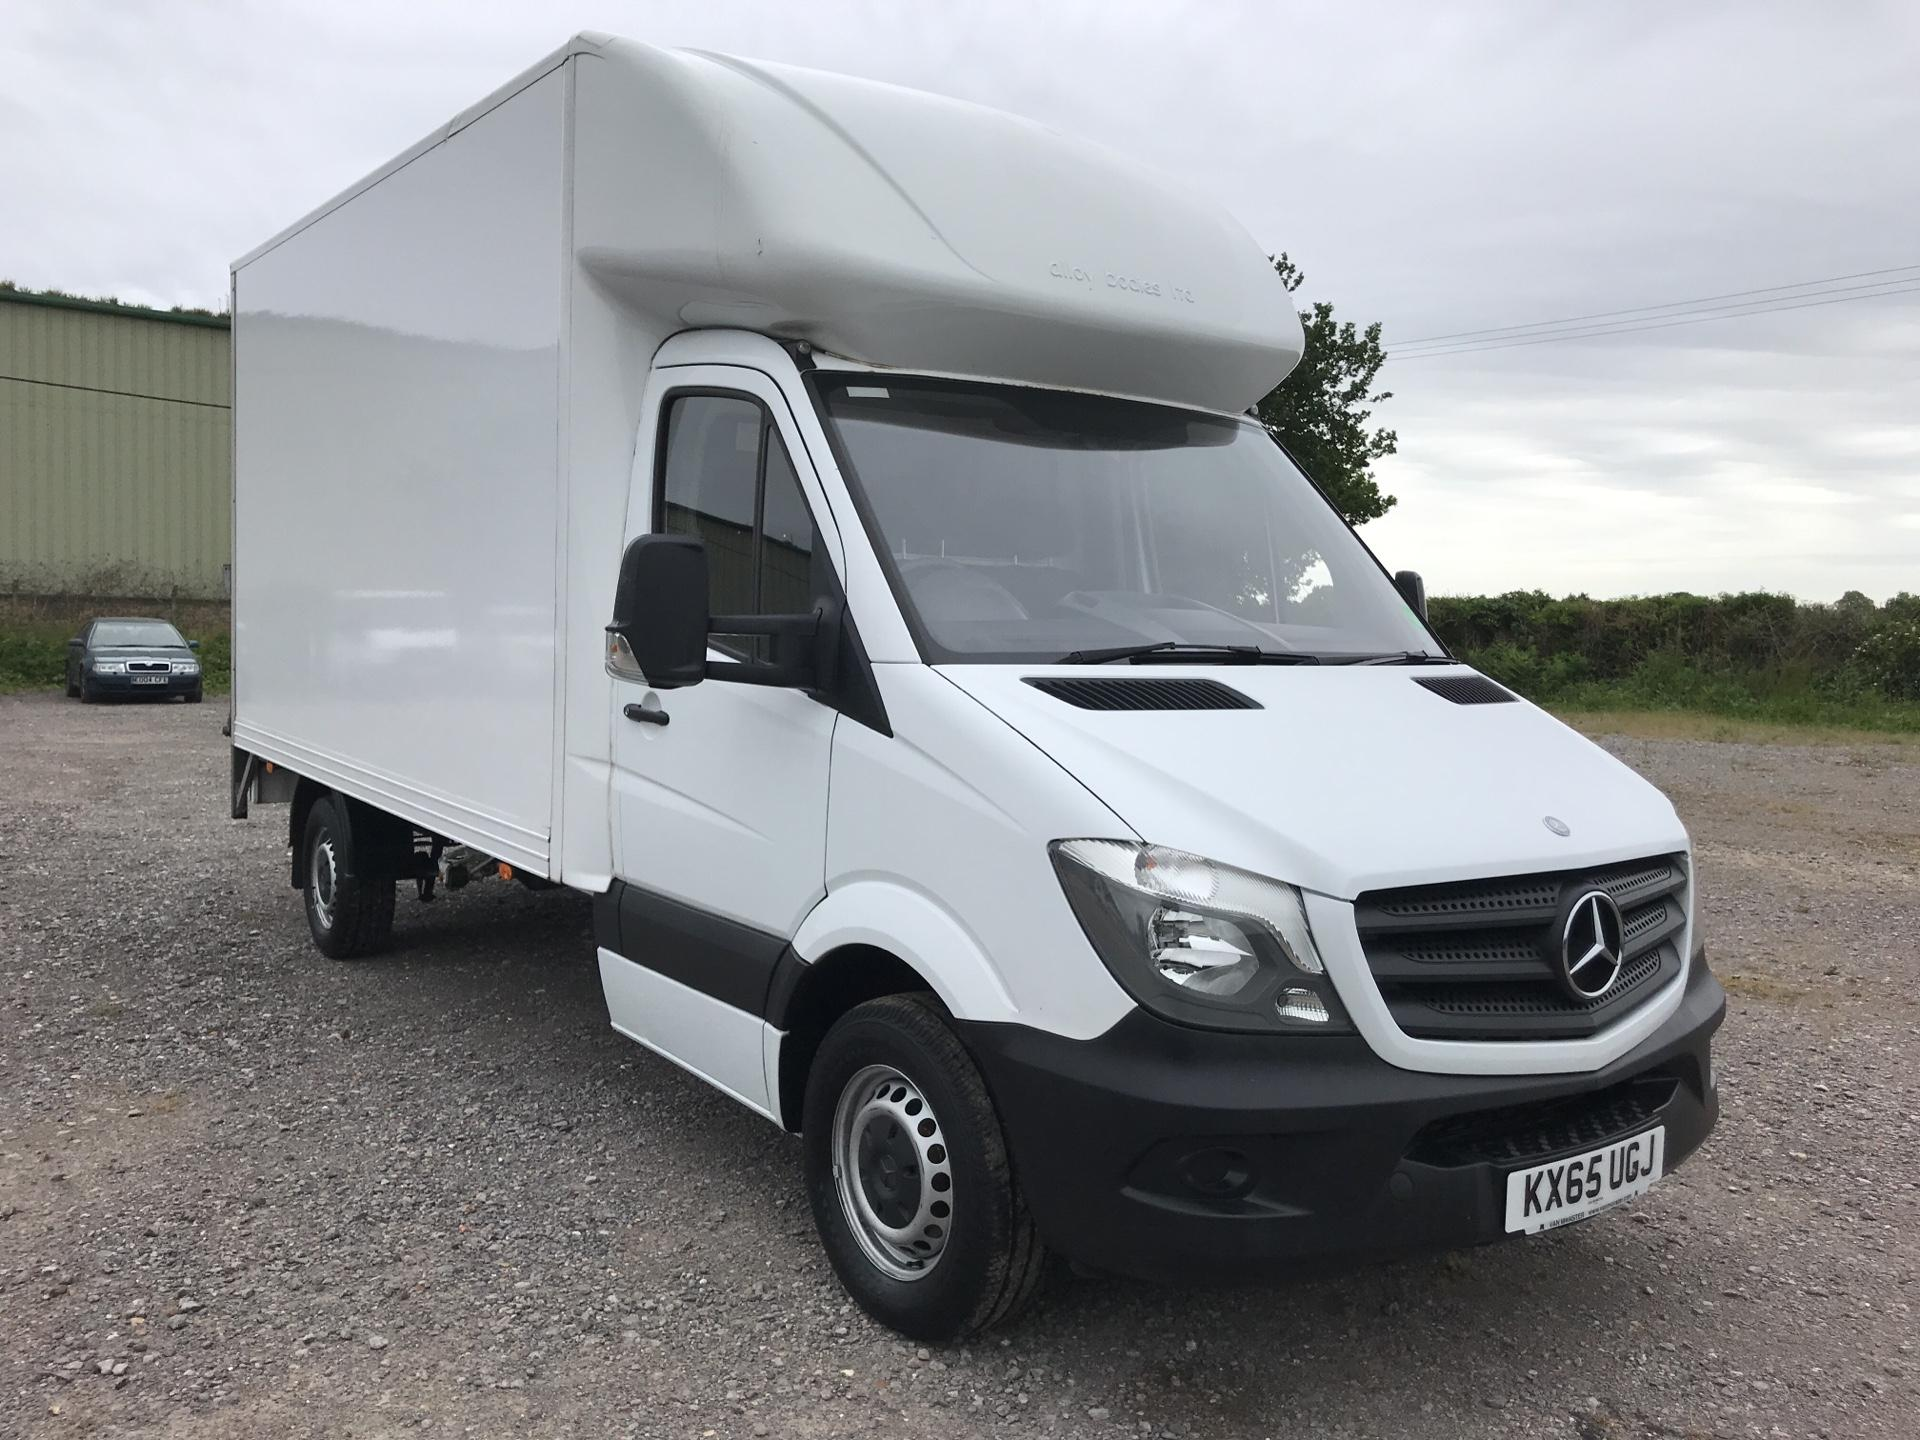 2015 Mercedes-Benz Sprinter 313 LWB LONG LUTON EURO 5 (KX65UGJ)